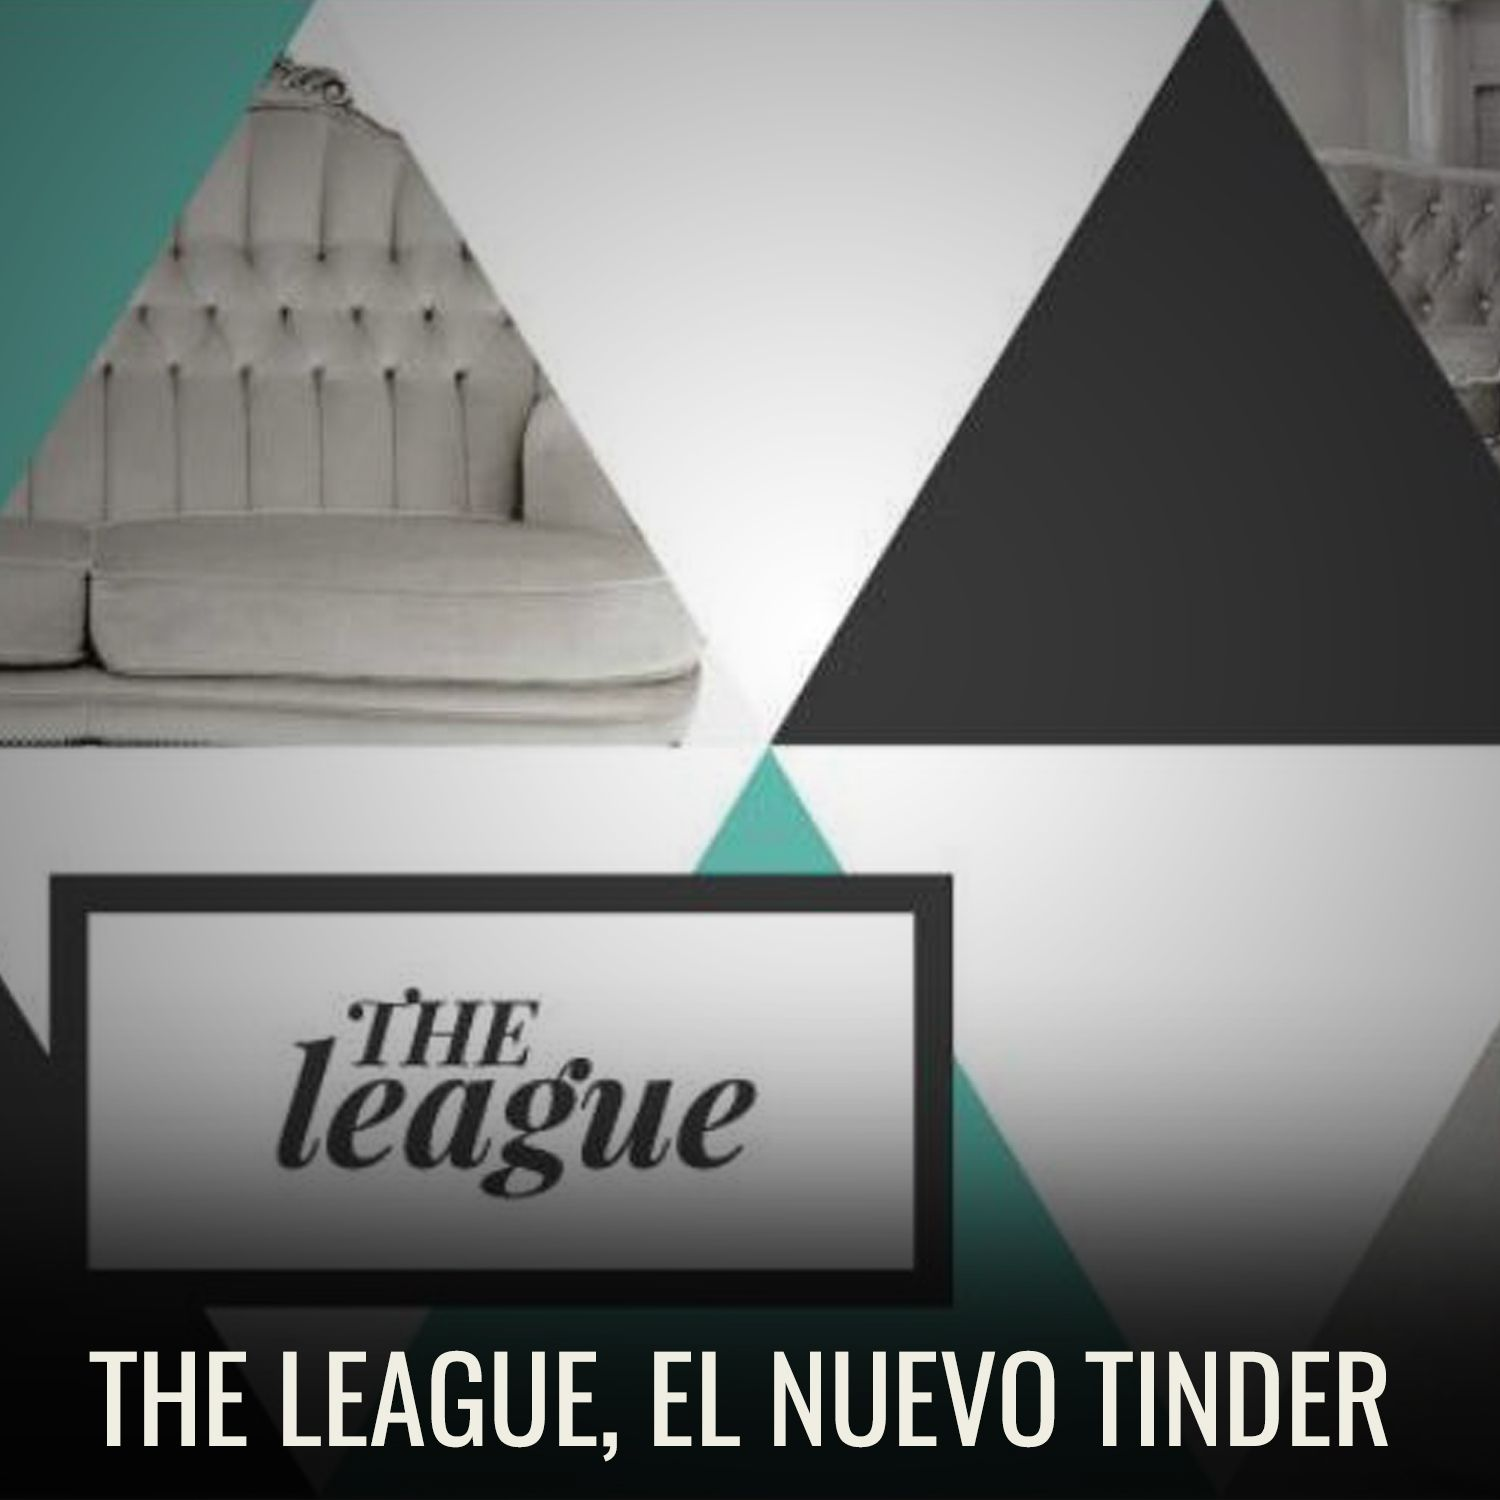 Así es The League​, el nuevo Tinder​ selectivo. http://www.enter.co/chips-bits/apps-software/todo-lo-que-necesitas-saber-sobre-the-league-el-tinder-selectivo/